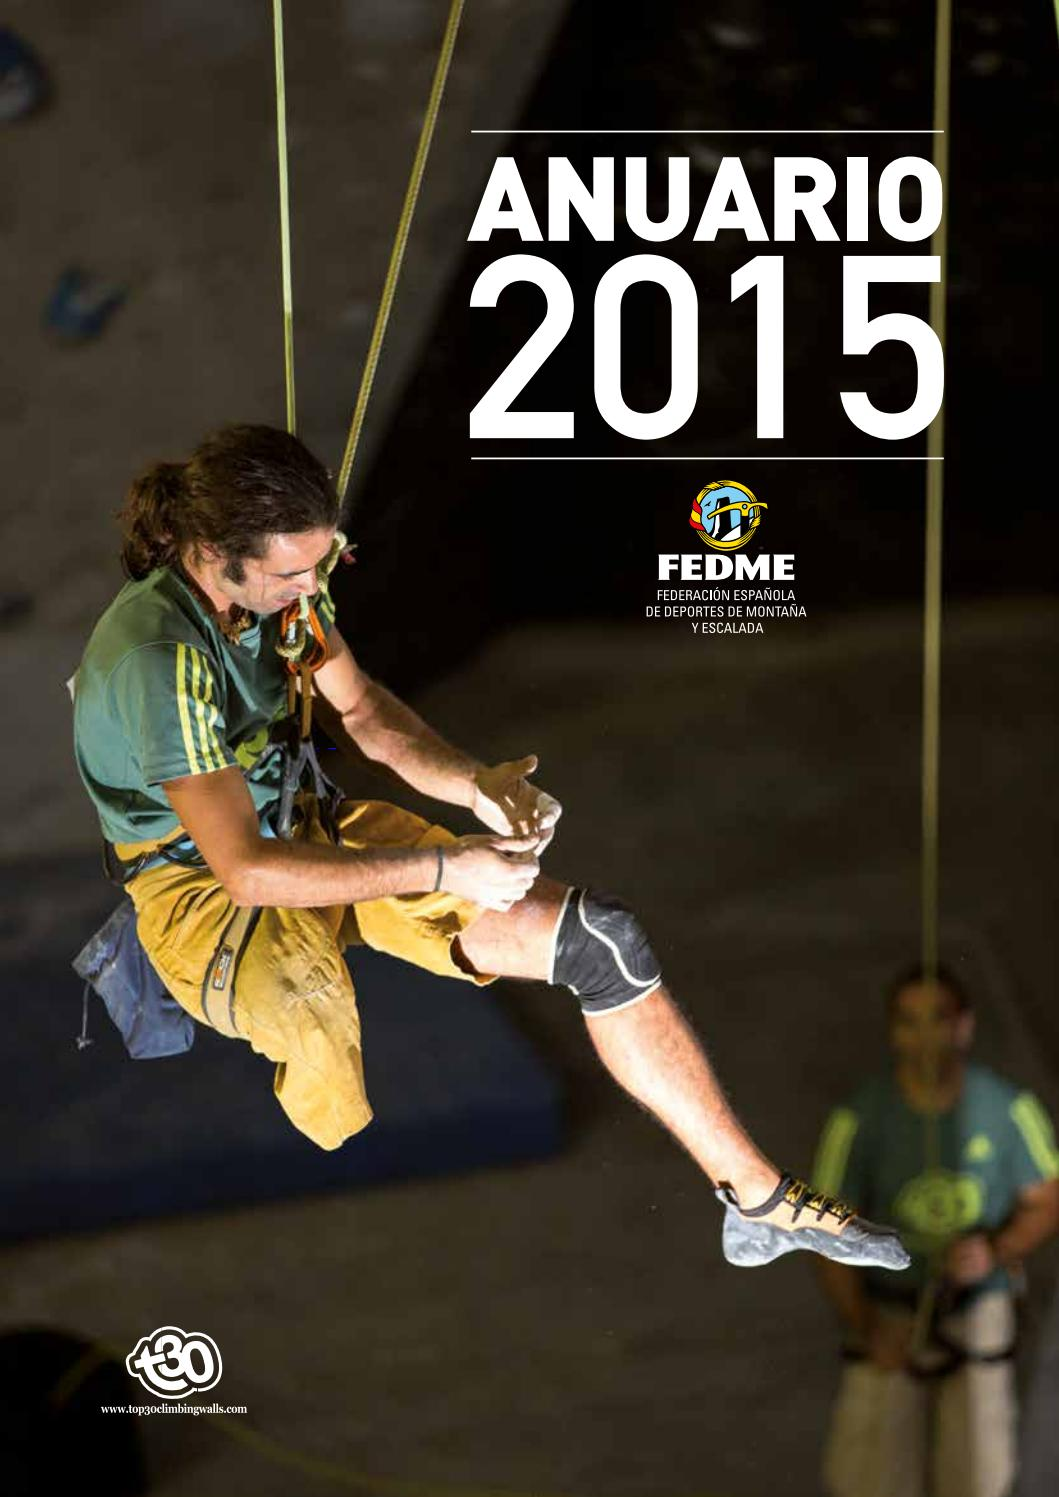 Anuario 2015 by FEDME - issuu